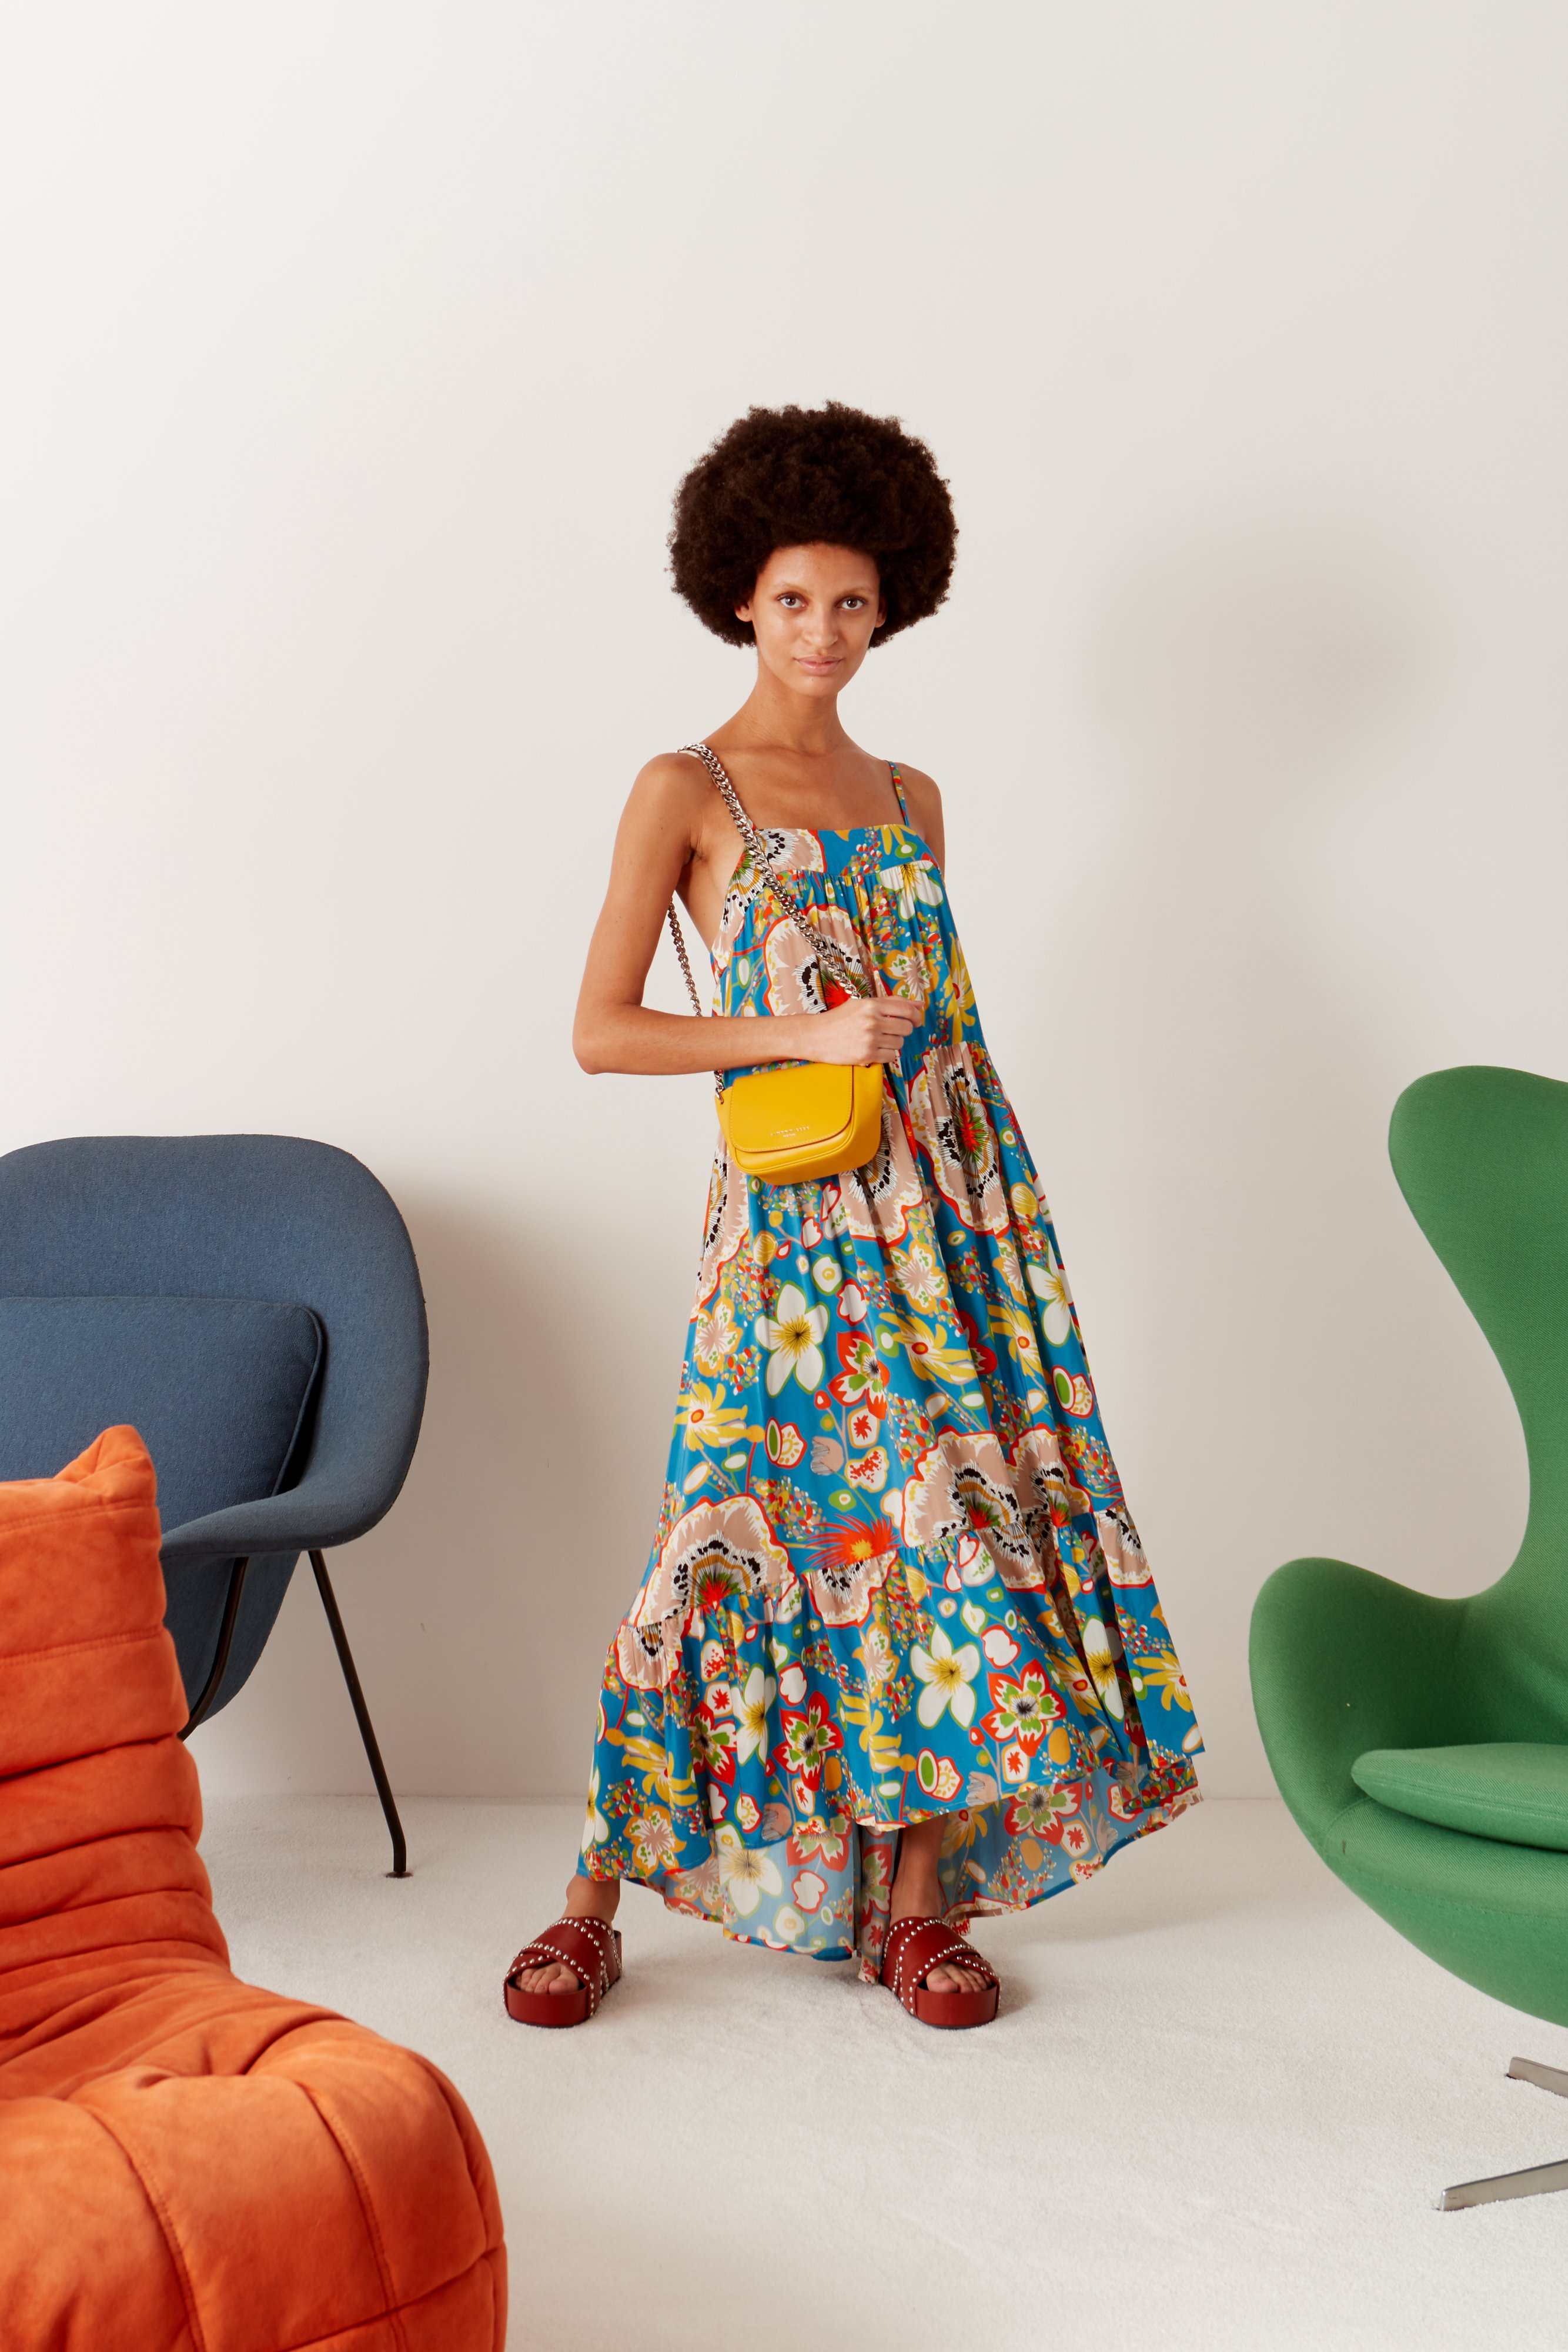 Pumpa Layered Tank Dress in Blue Floral Print by Simon Miller - 2